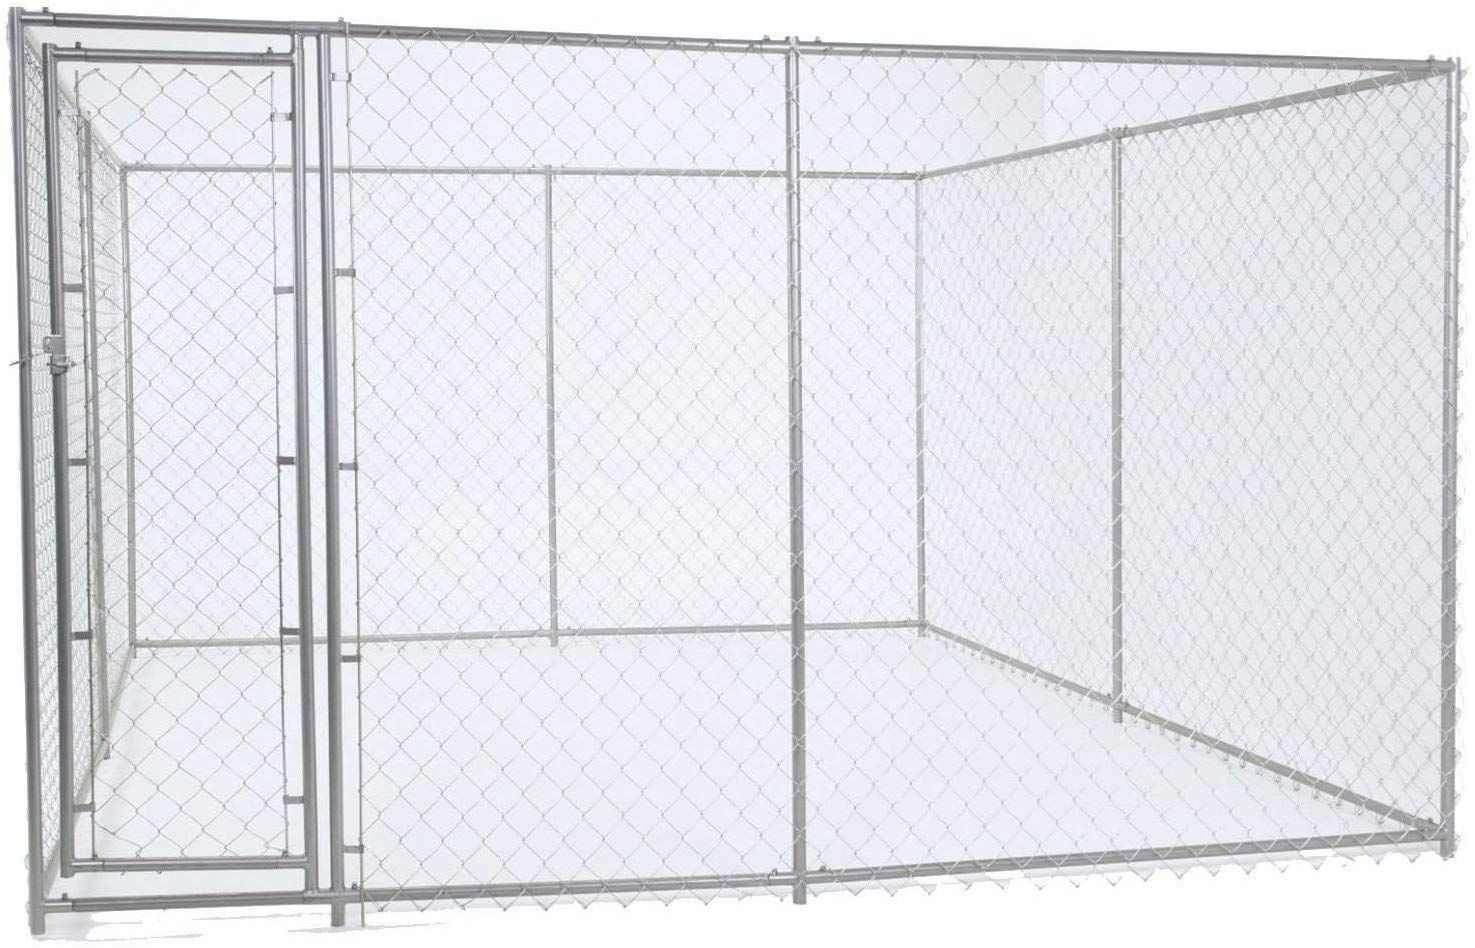 Chain Link Fence Outdoor Dog Kennel Chain Link Fence Outdoor Kennel Maschen Chain Dog Fence K Dog Kennel Chain Link Dog Kennel Dog Kennel Outdoor